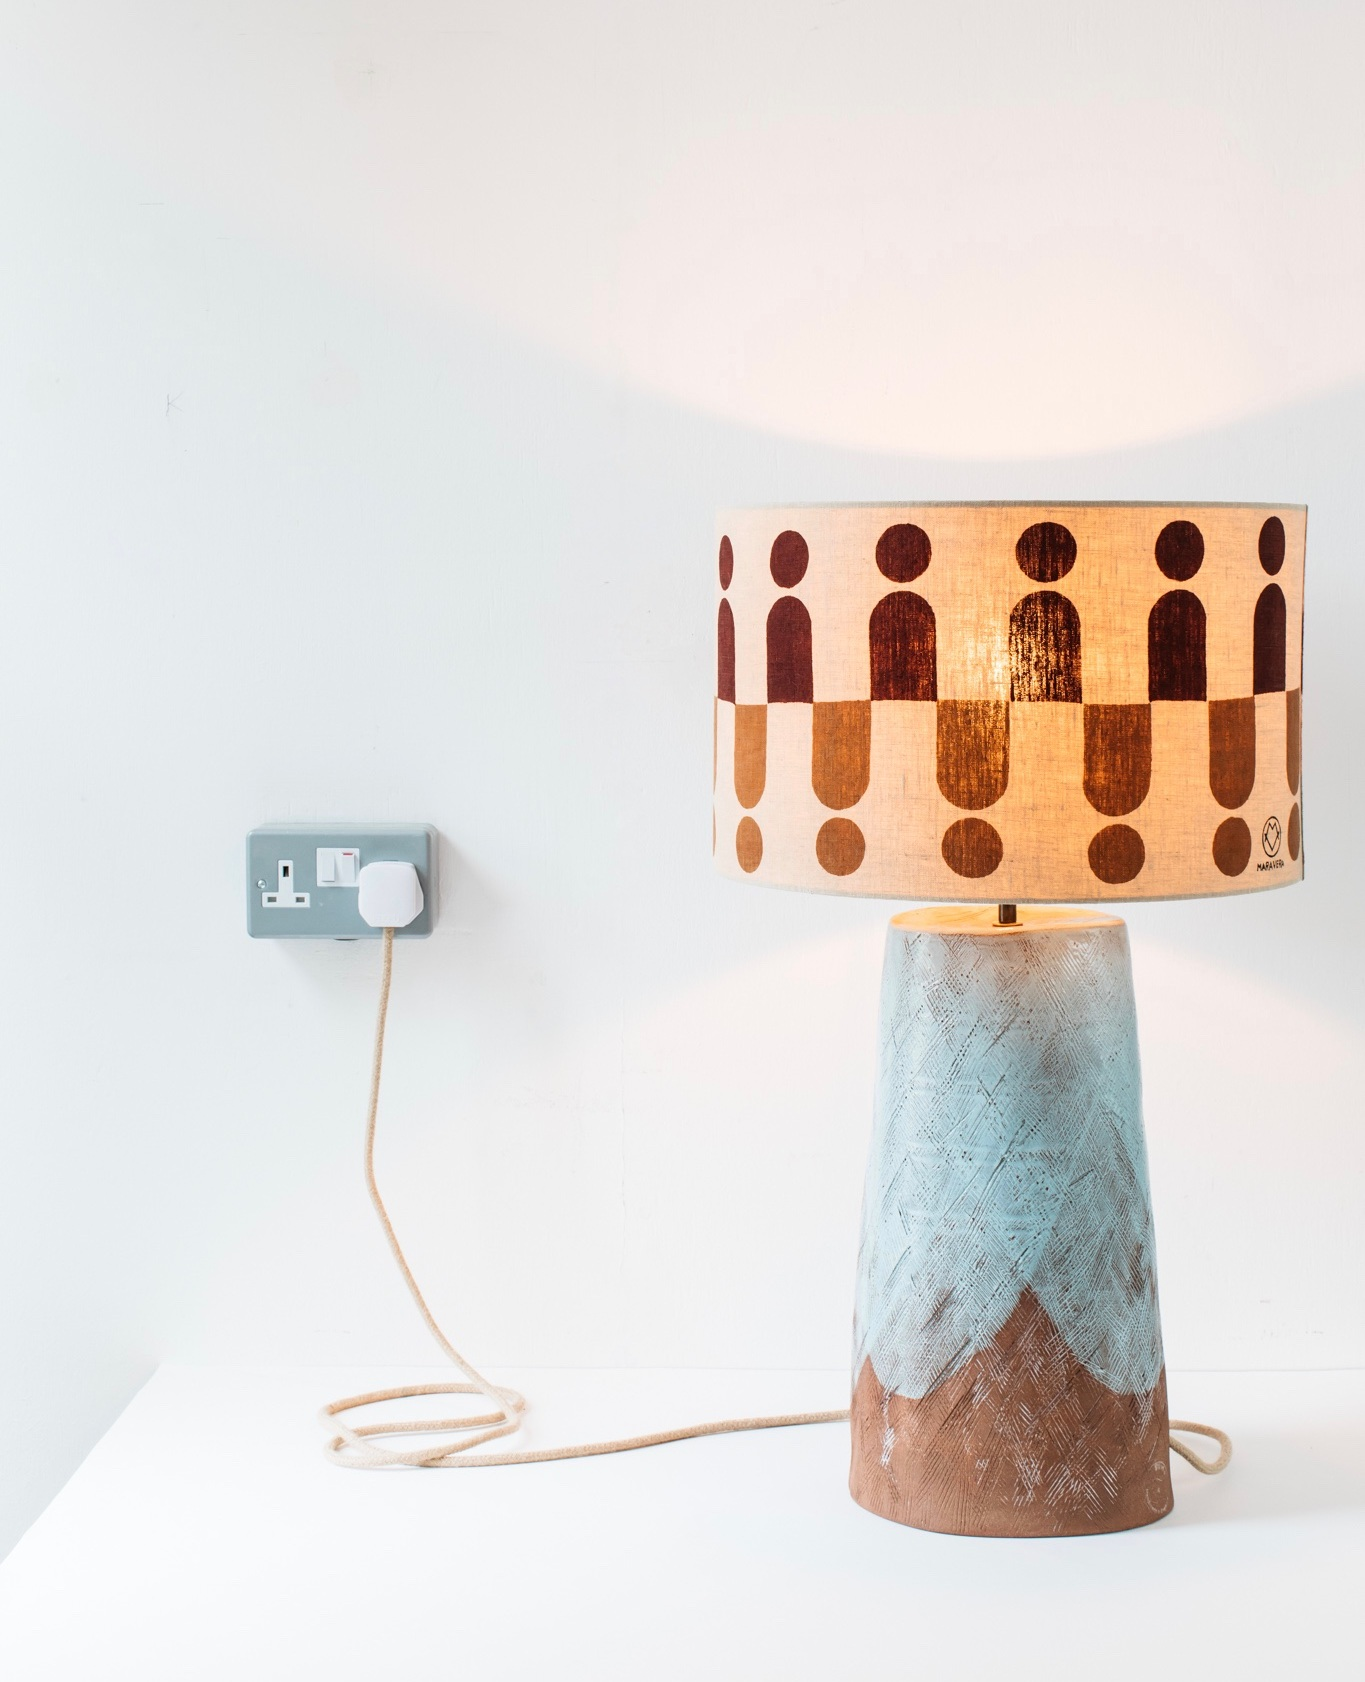 silviak_x_maravera+limited+edition+lamp